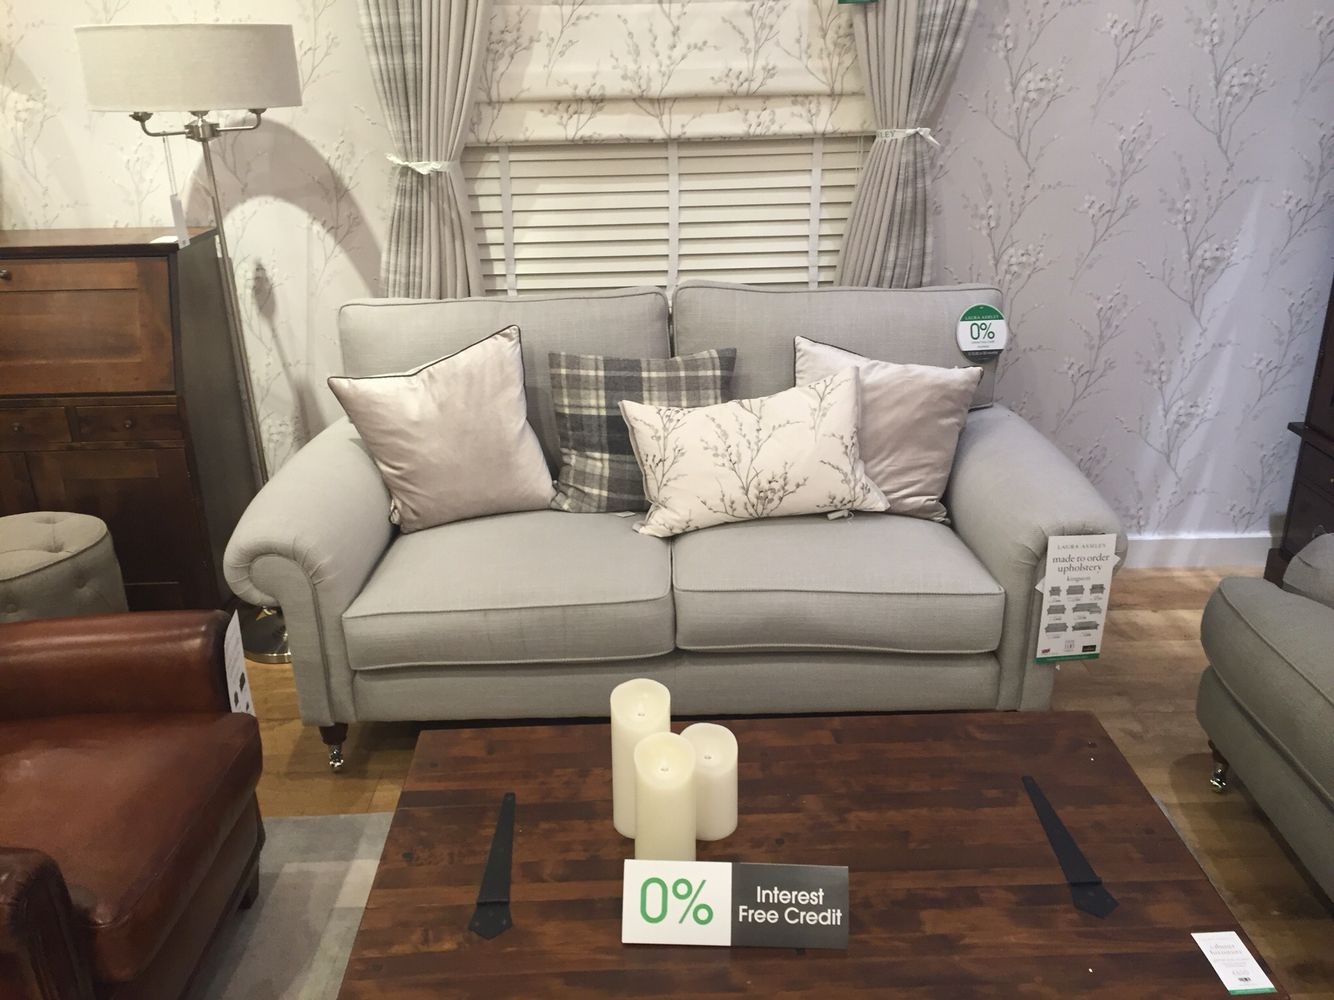 laura ashley kingston sofa dove grey home decor pinterest dove grey laura ashley and kingston. Black Bedroom Furniture Sets. Home Design Ideas